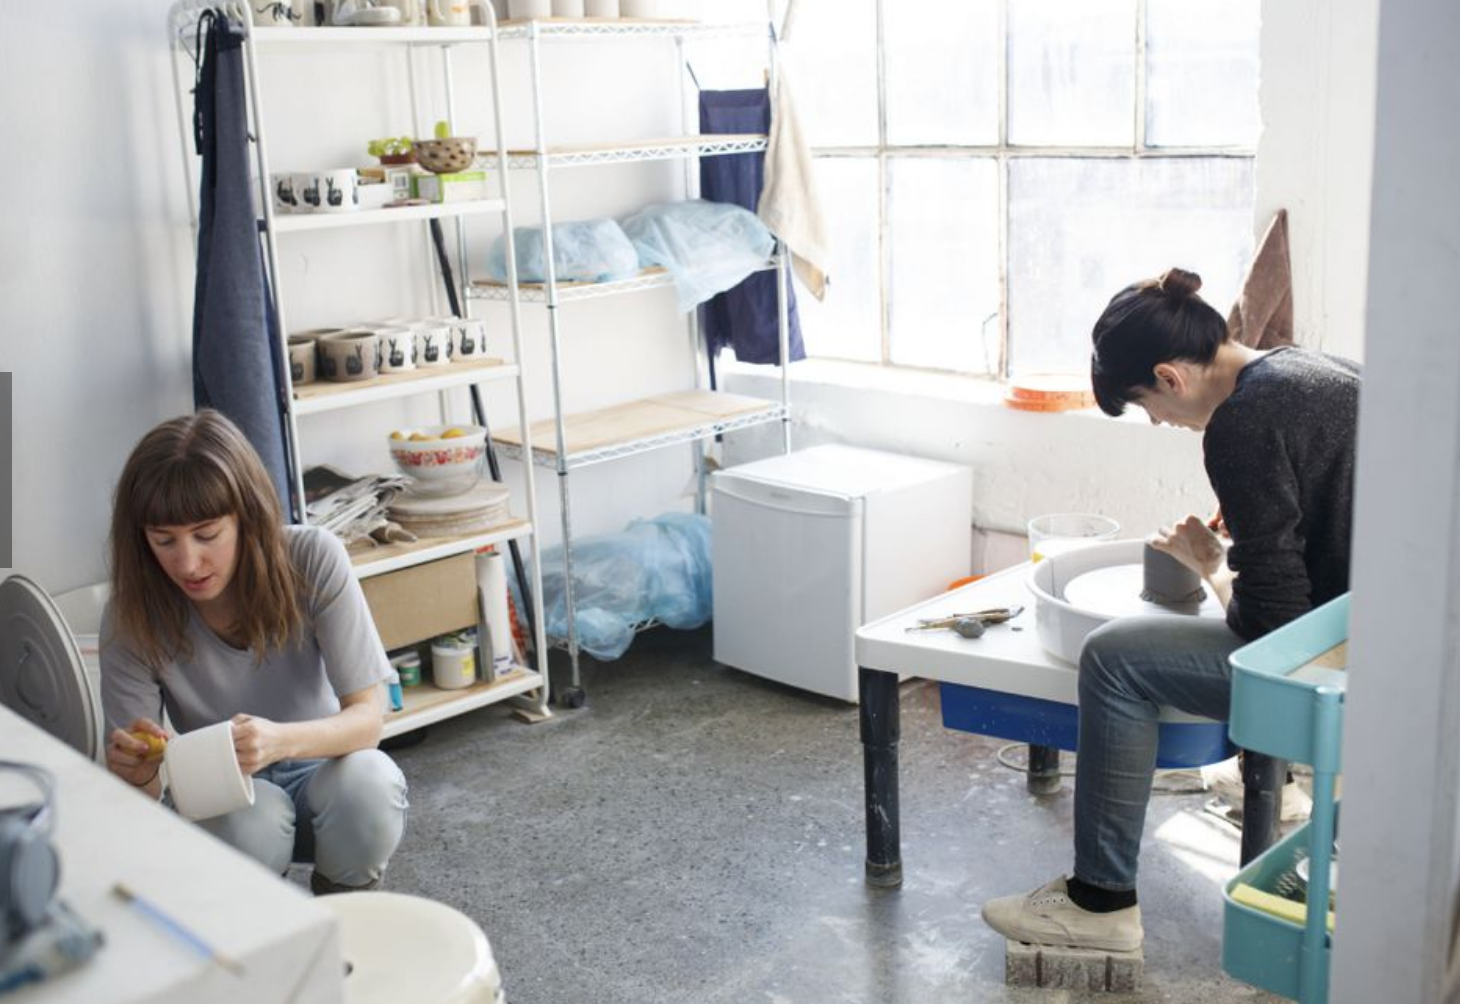 Artists working at Akin Dupont Art studios for rent in Toronto Canada. Photo by Cole Burston for the Toronto Star